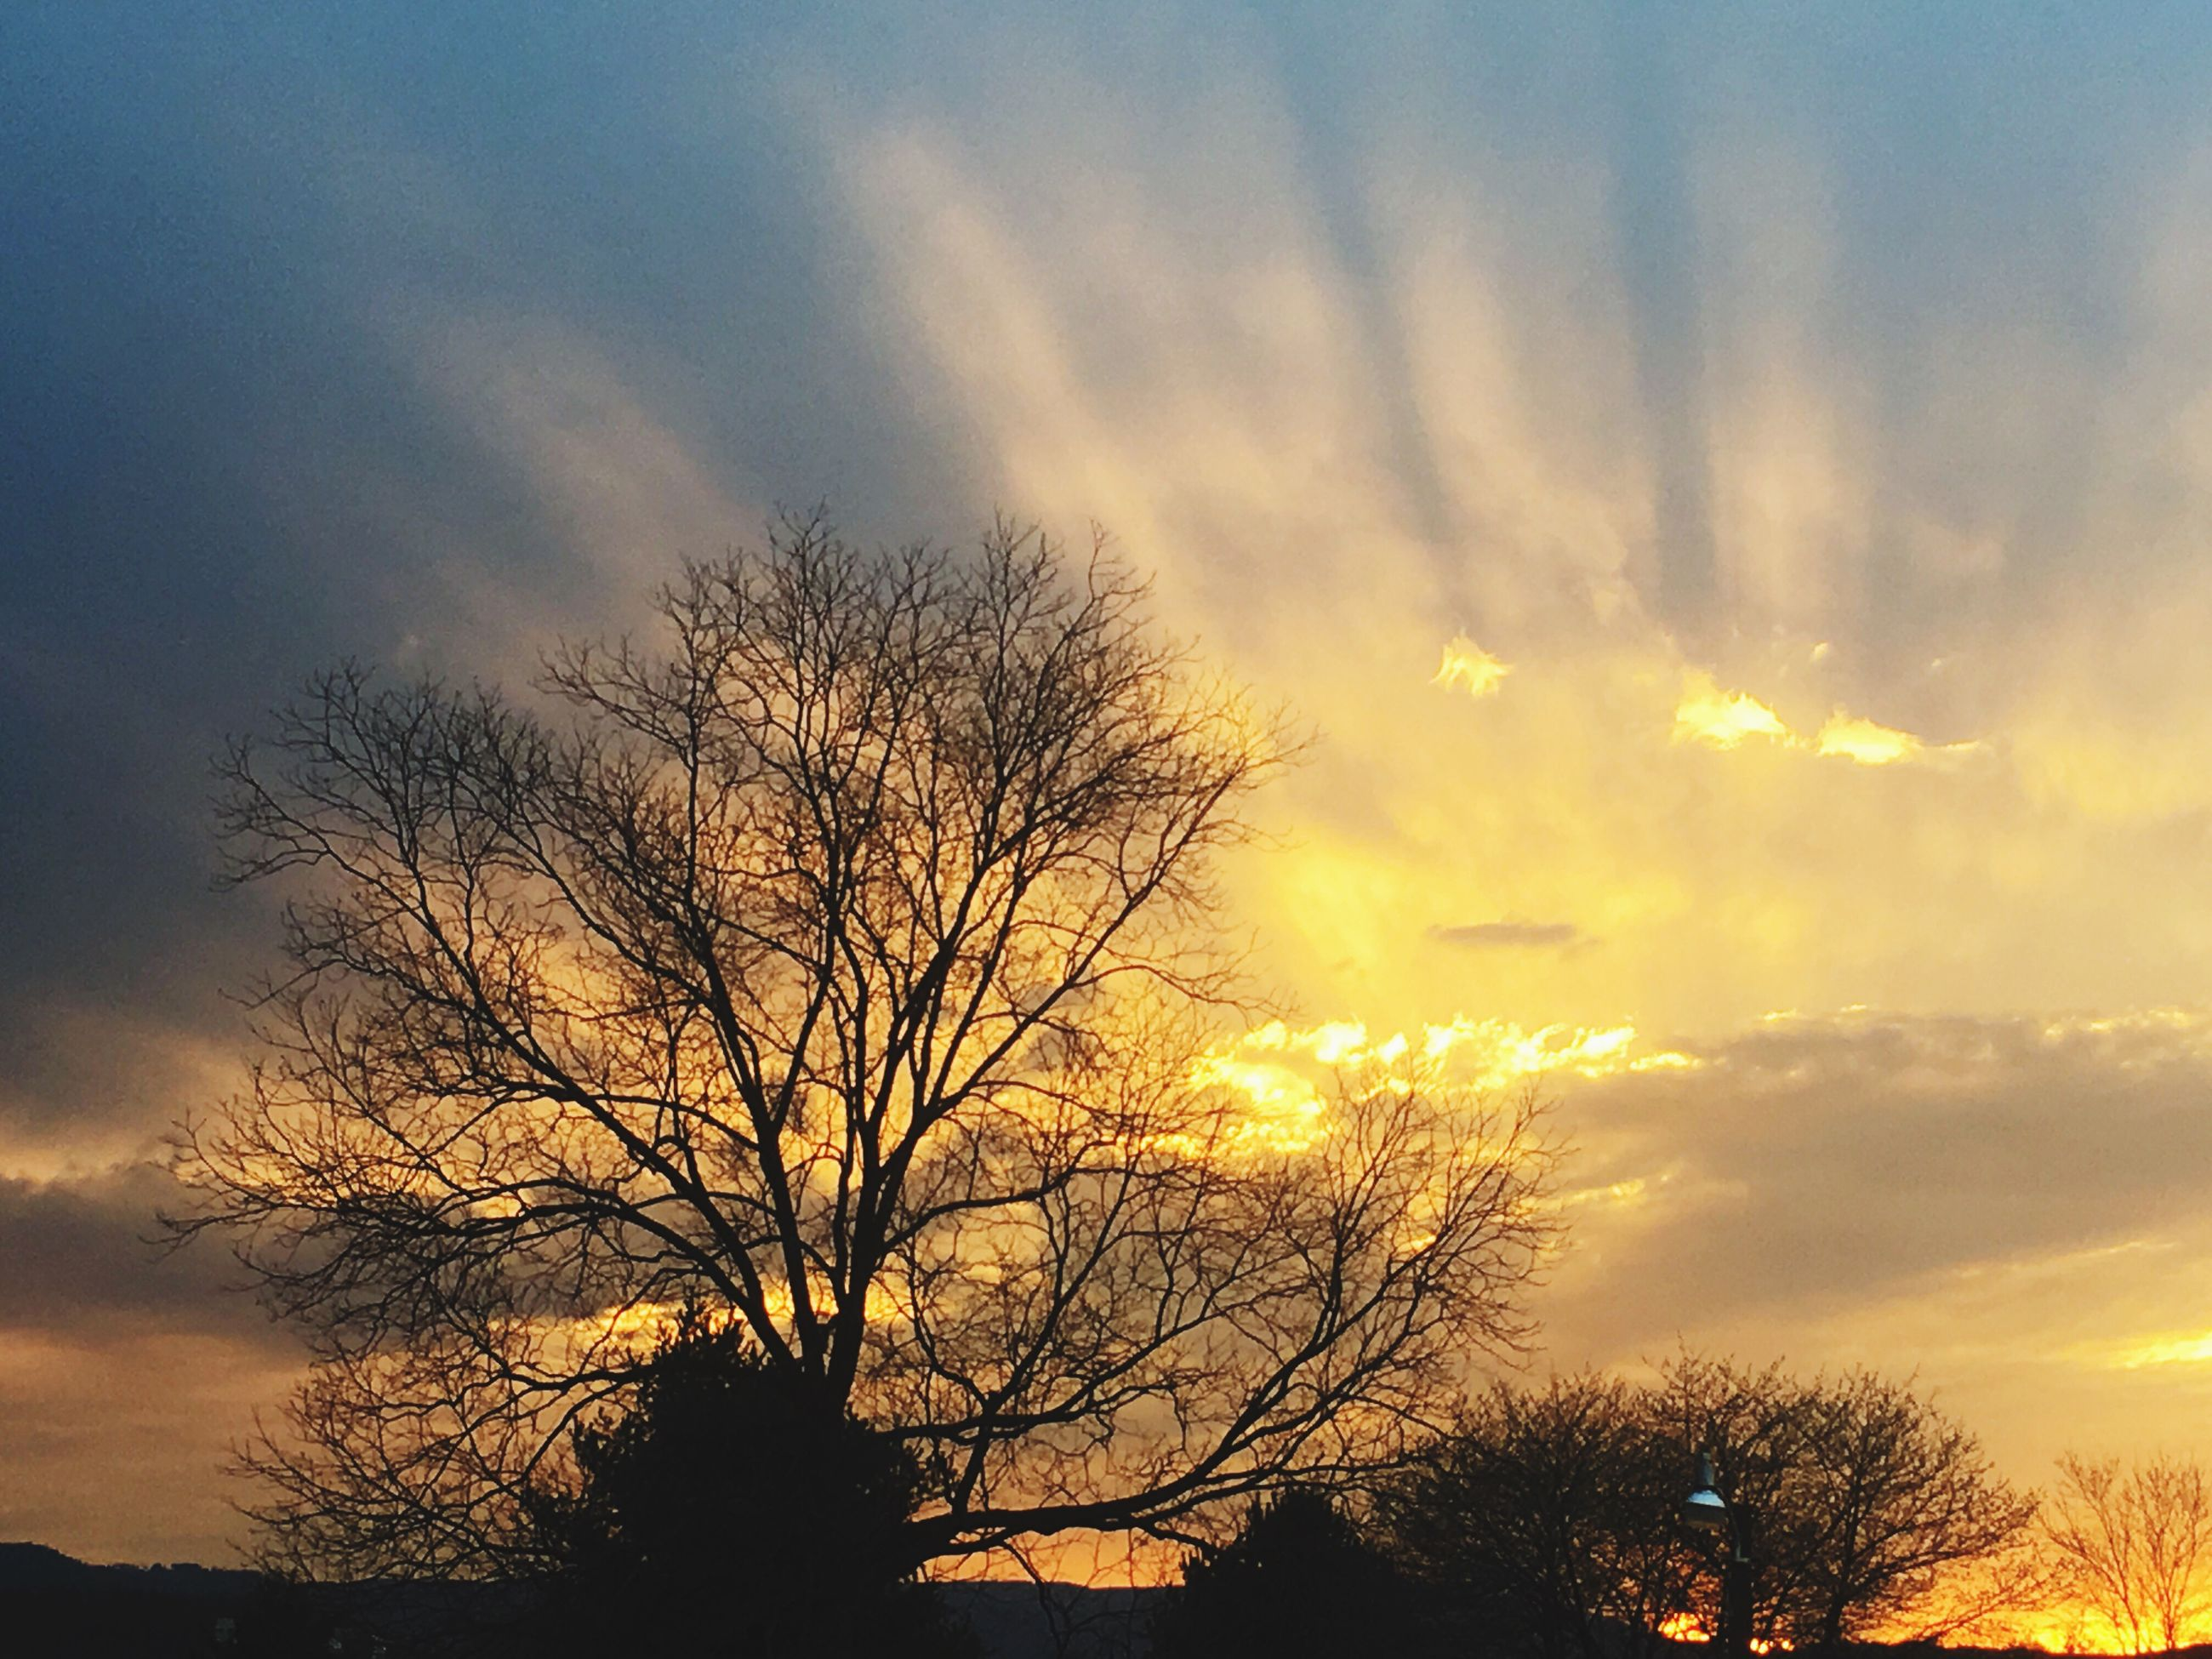 sunset, nature, sky, silhouette, beauty in nature, cloud - sky, no people, dramatic sky, tranquility, tree, outdoors, beauty, scenics, close-up, day